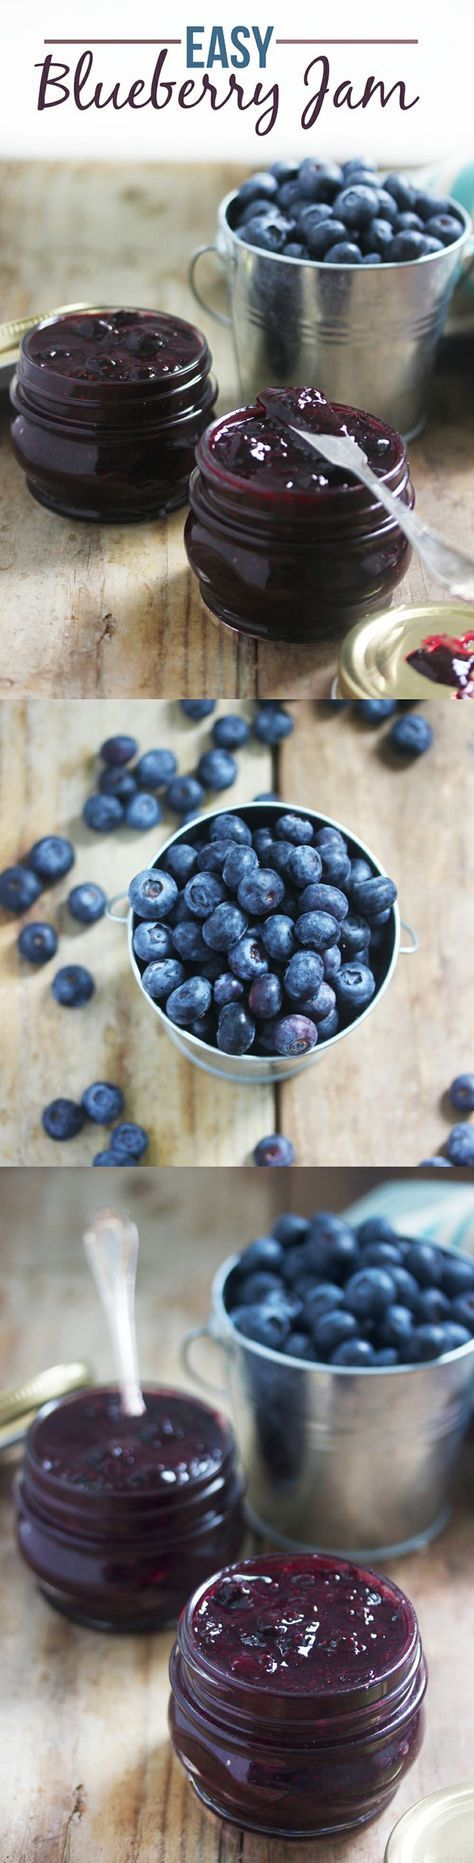 Easy Blueberry Jam Recipe ~ Says: Say good-bye to store-bought jam loaded with preservatives and sugars. You are going to be amazed at how quickly this jam comes together, and how thick it get